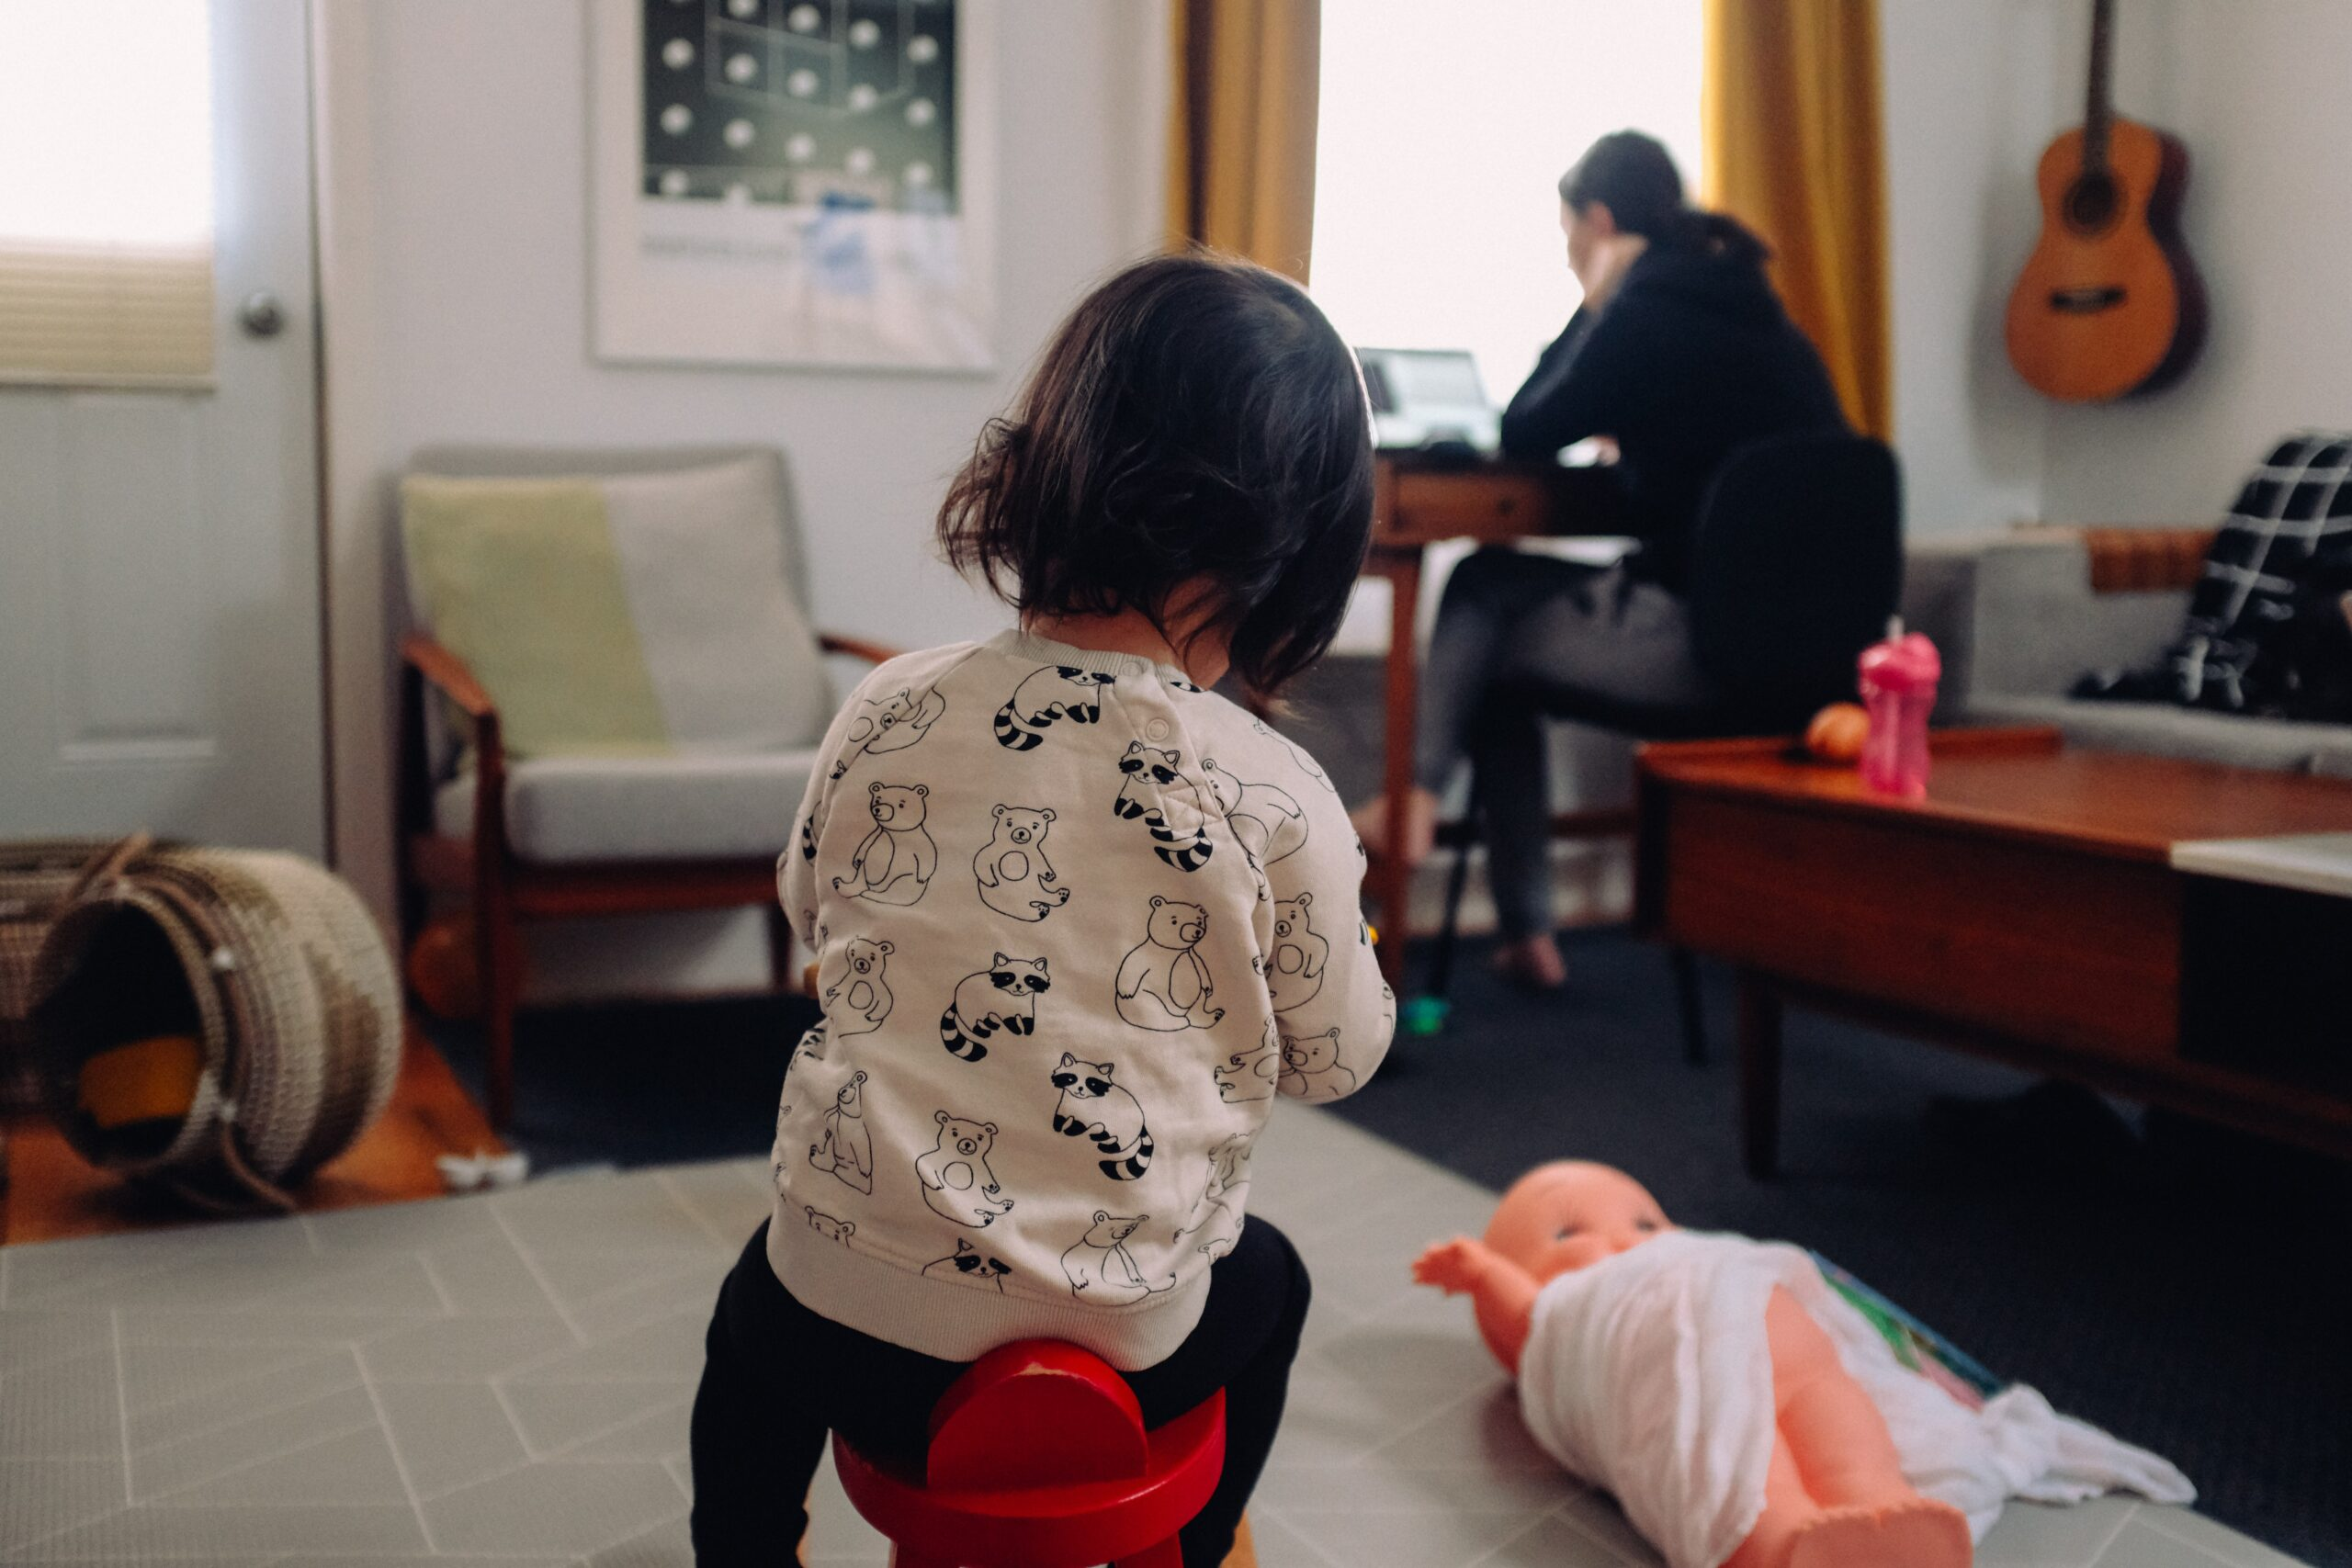 <p>A single woman with children faces particular difficulties in Mexico. (Charles Deluvio/Unsplash)</p>